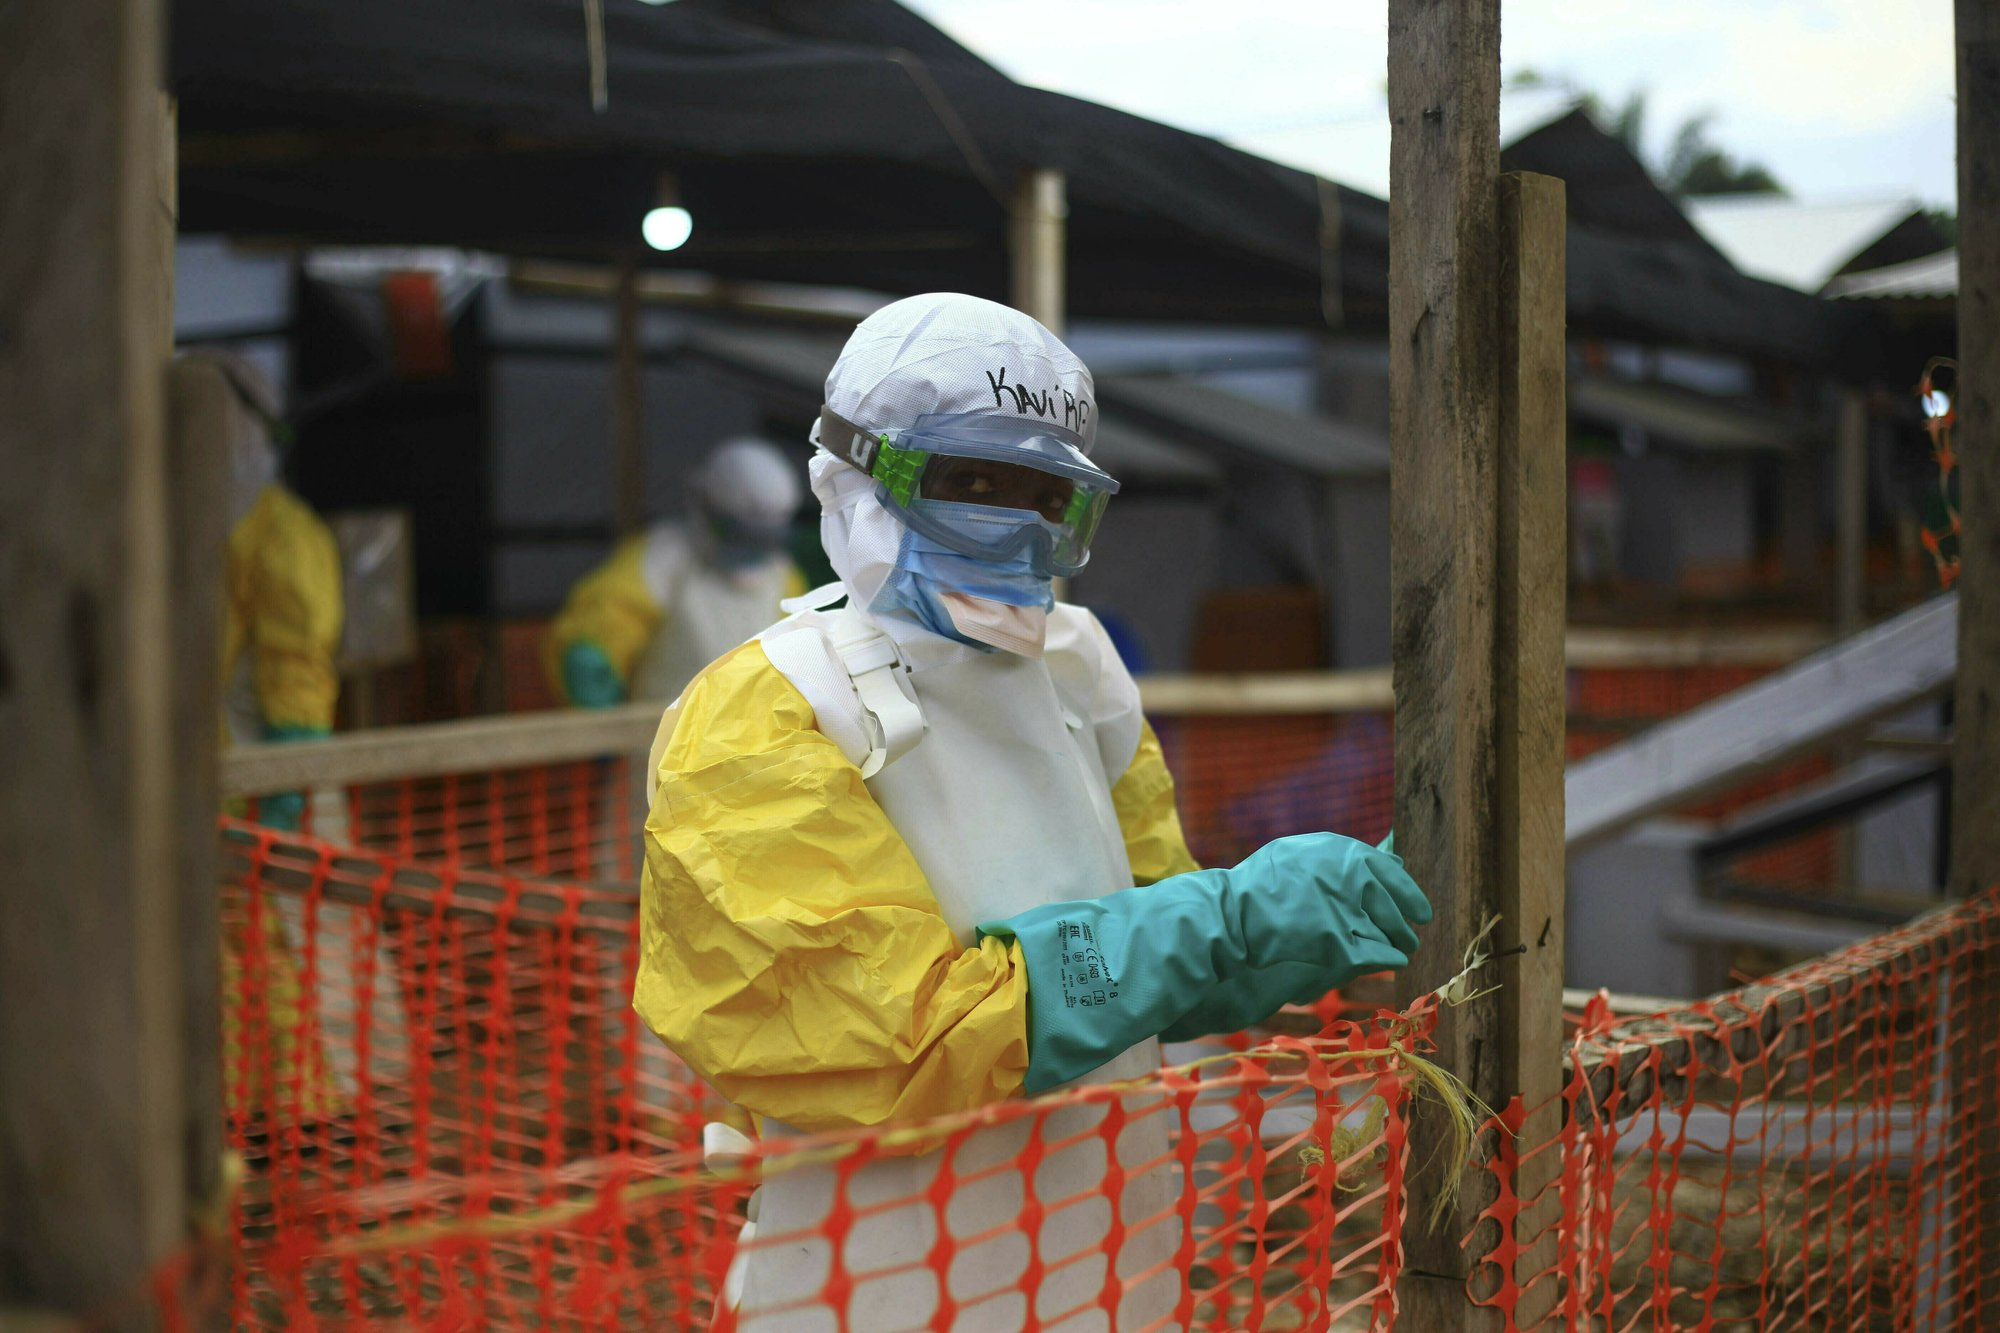 This Tuesday, April, 16, 2019 file photo taken in Congo shows an Ebola health worker at a treatment center in Beni, Eastern Congo. Uganda's health ministry said late Tuesday, June 11, 2019 that a 5-year-old Congolese boy who crossed into Uganda has tested positive for Ebola in what is the first cross-border case of the deadly virus since an outbreak started in neighboring Congo last year. (AP Photo/Al-hadji Kudra Maliro, File)